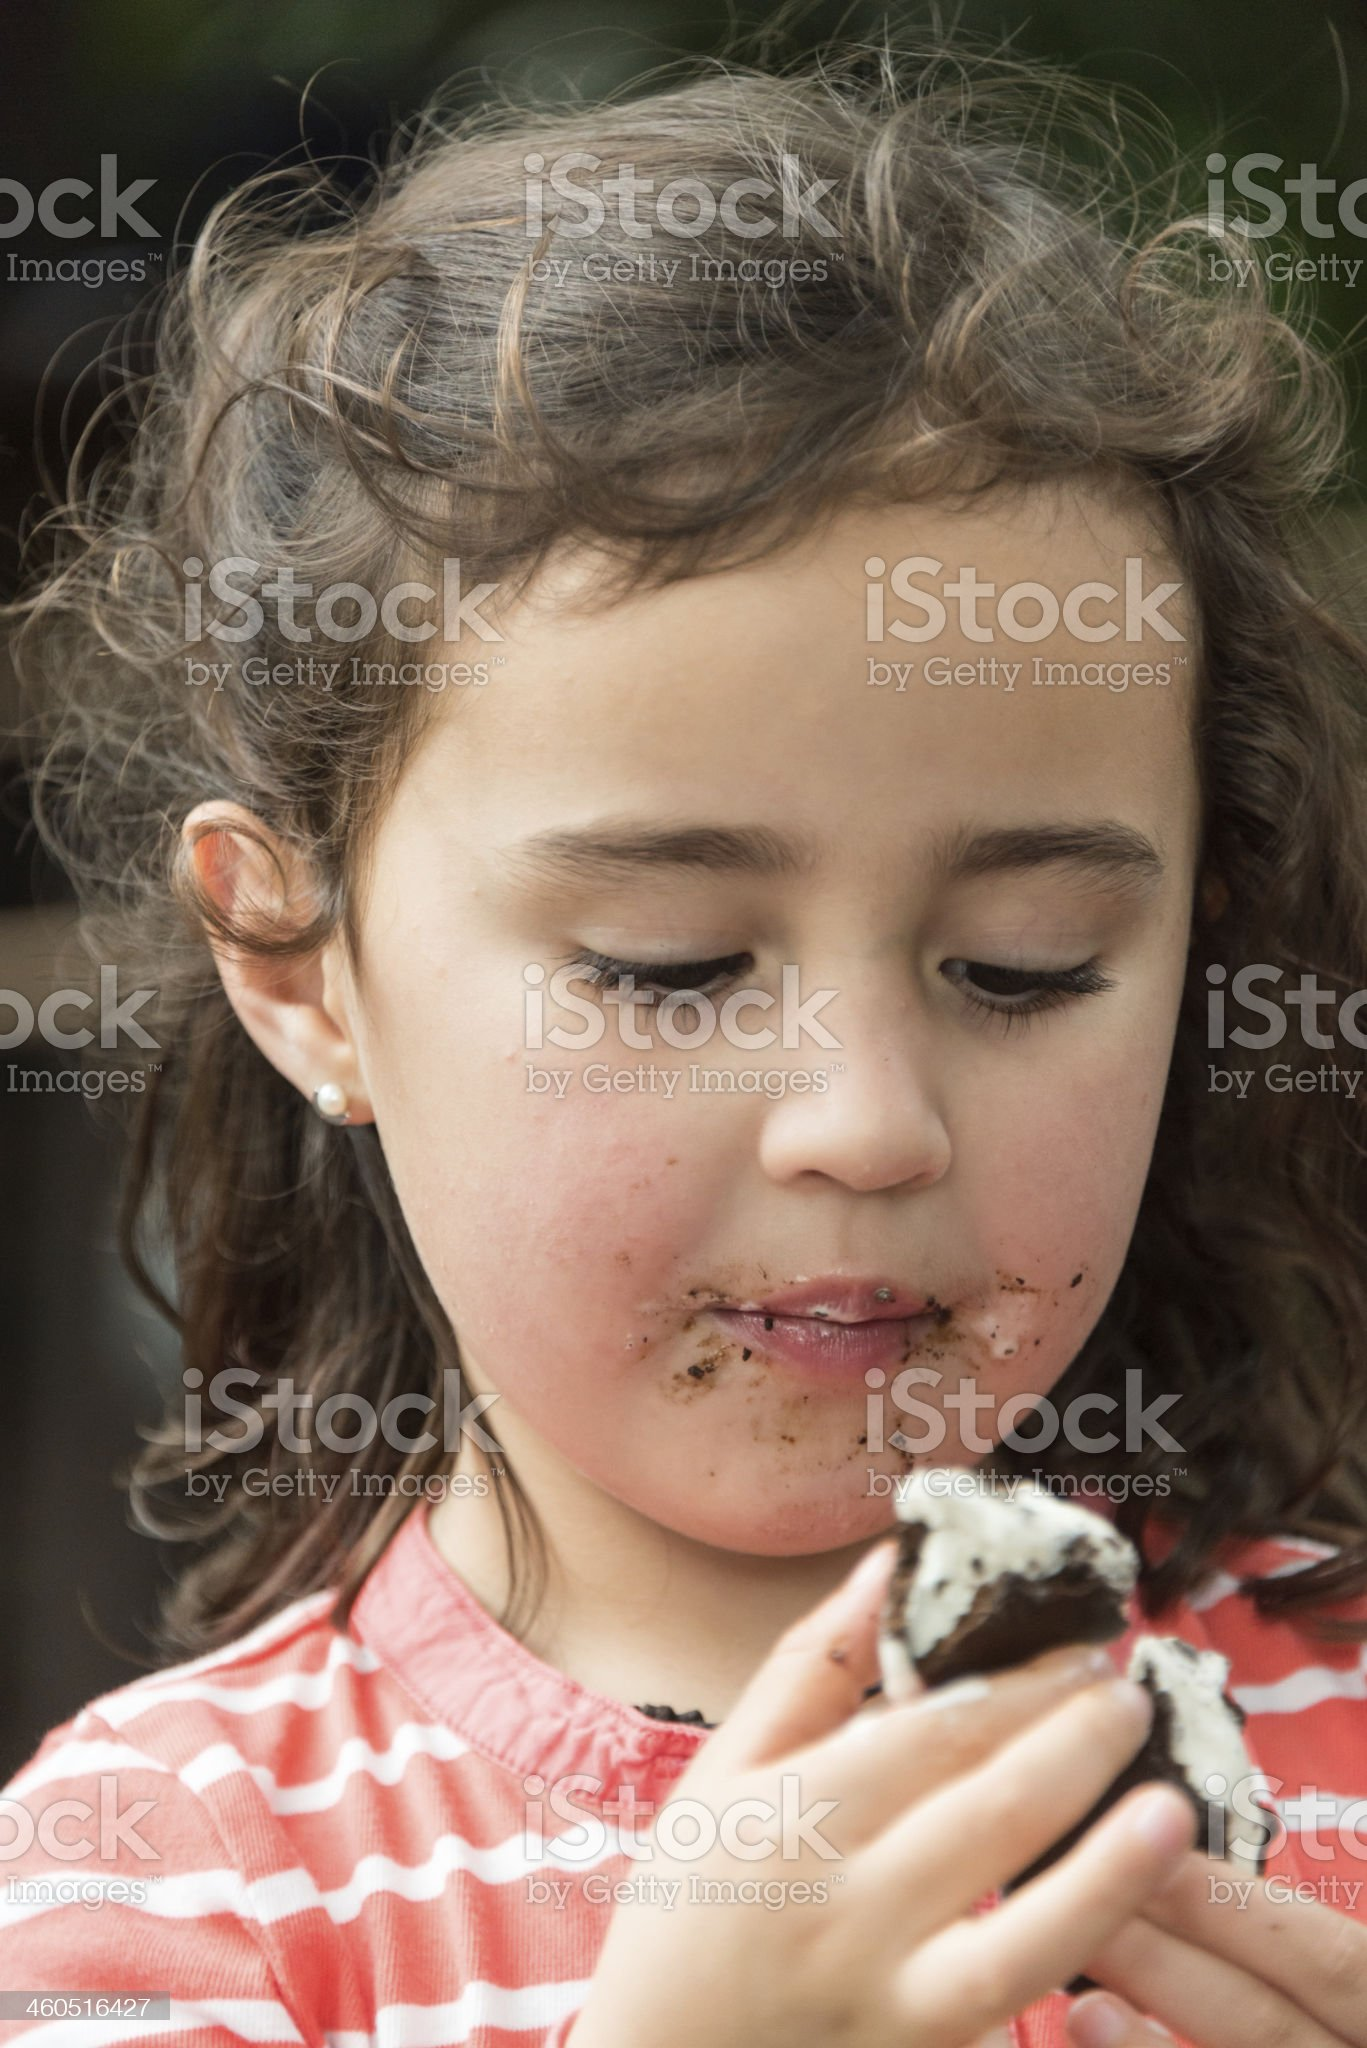 Little girl having an ice cream royalty-free stock photo